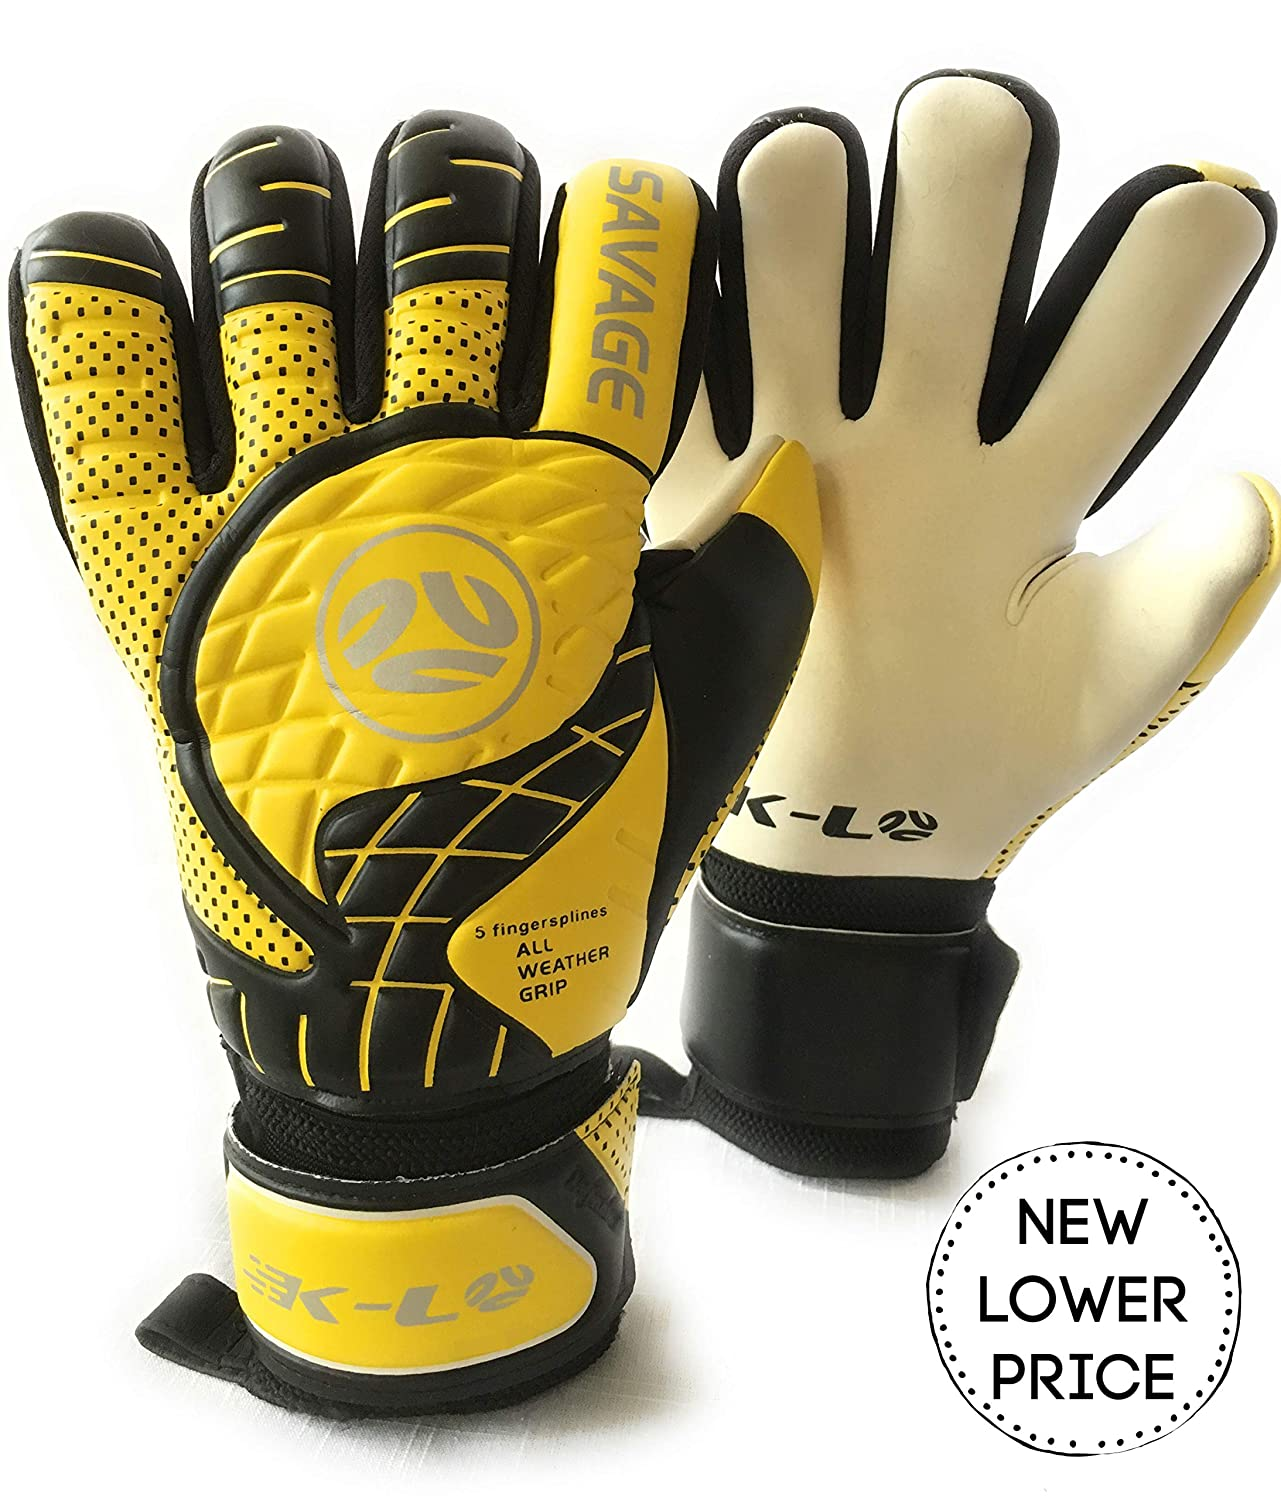 c39dfadc229 FINGERSAVE Goalkeeper Gloves by K-LO - The Savage Goalie Glove Has  Fingersave Protection in All 5-Fingers to Prevent Injury and Improve Shot  Blocking.